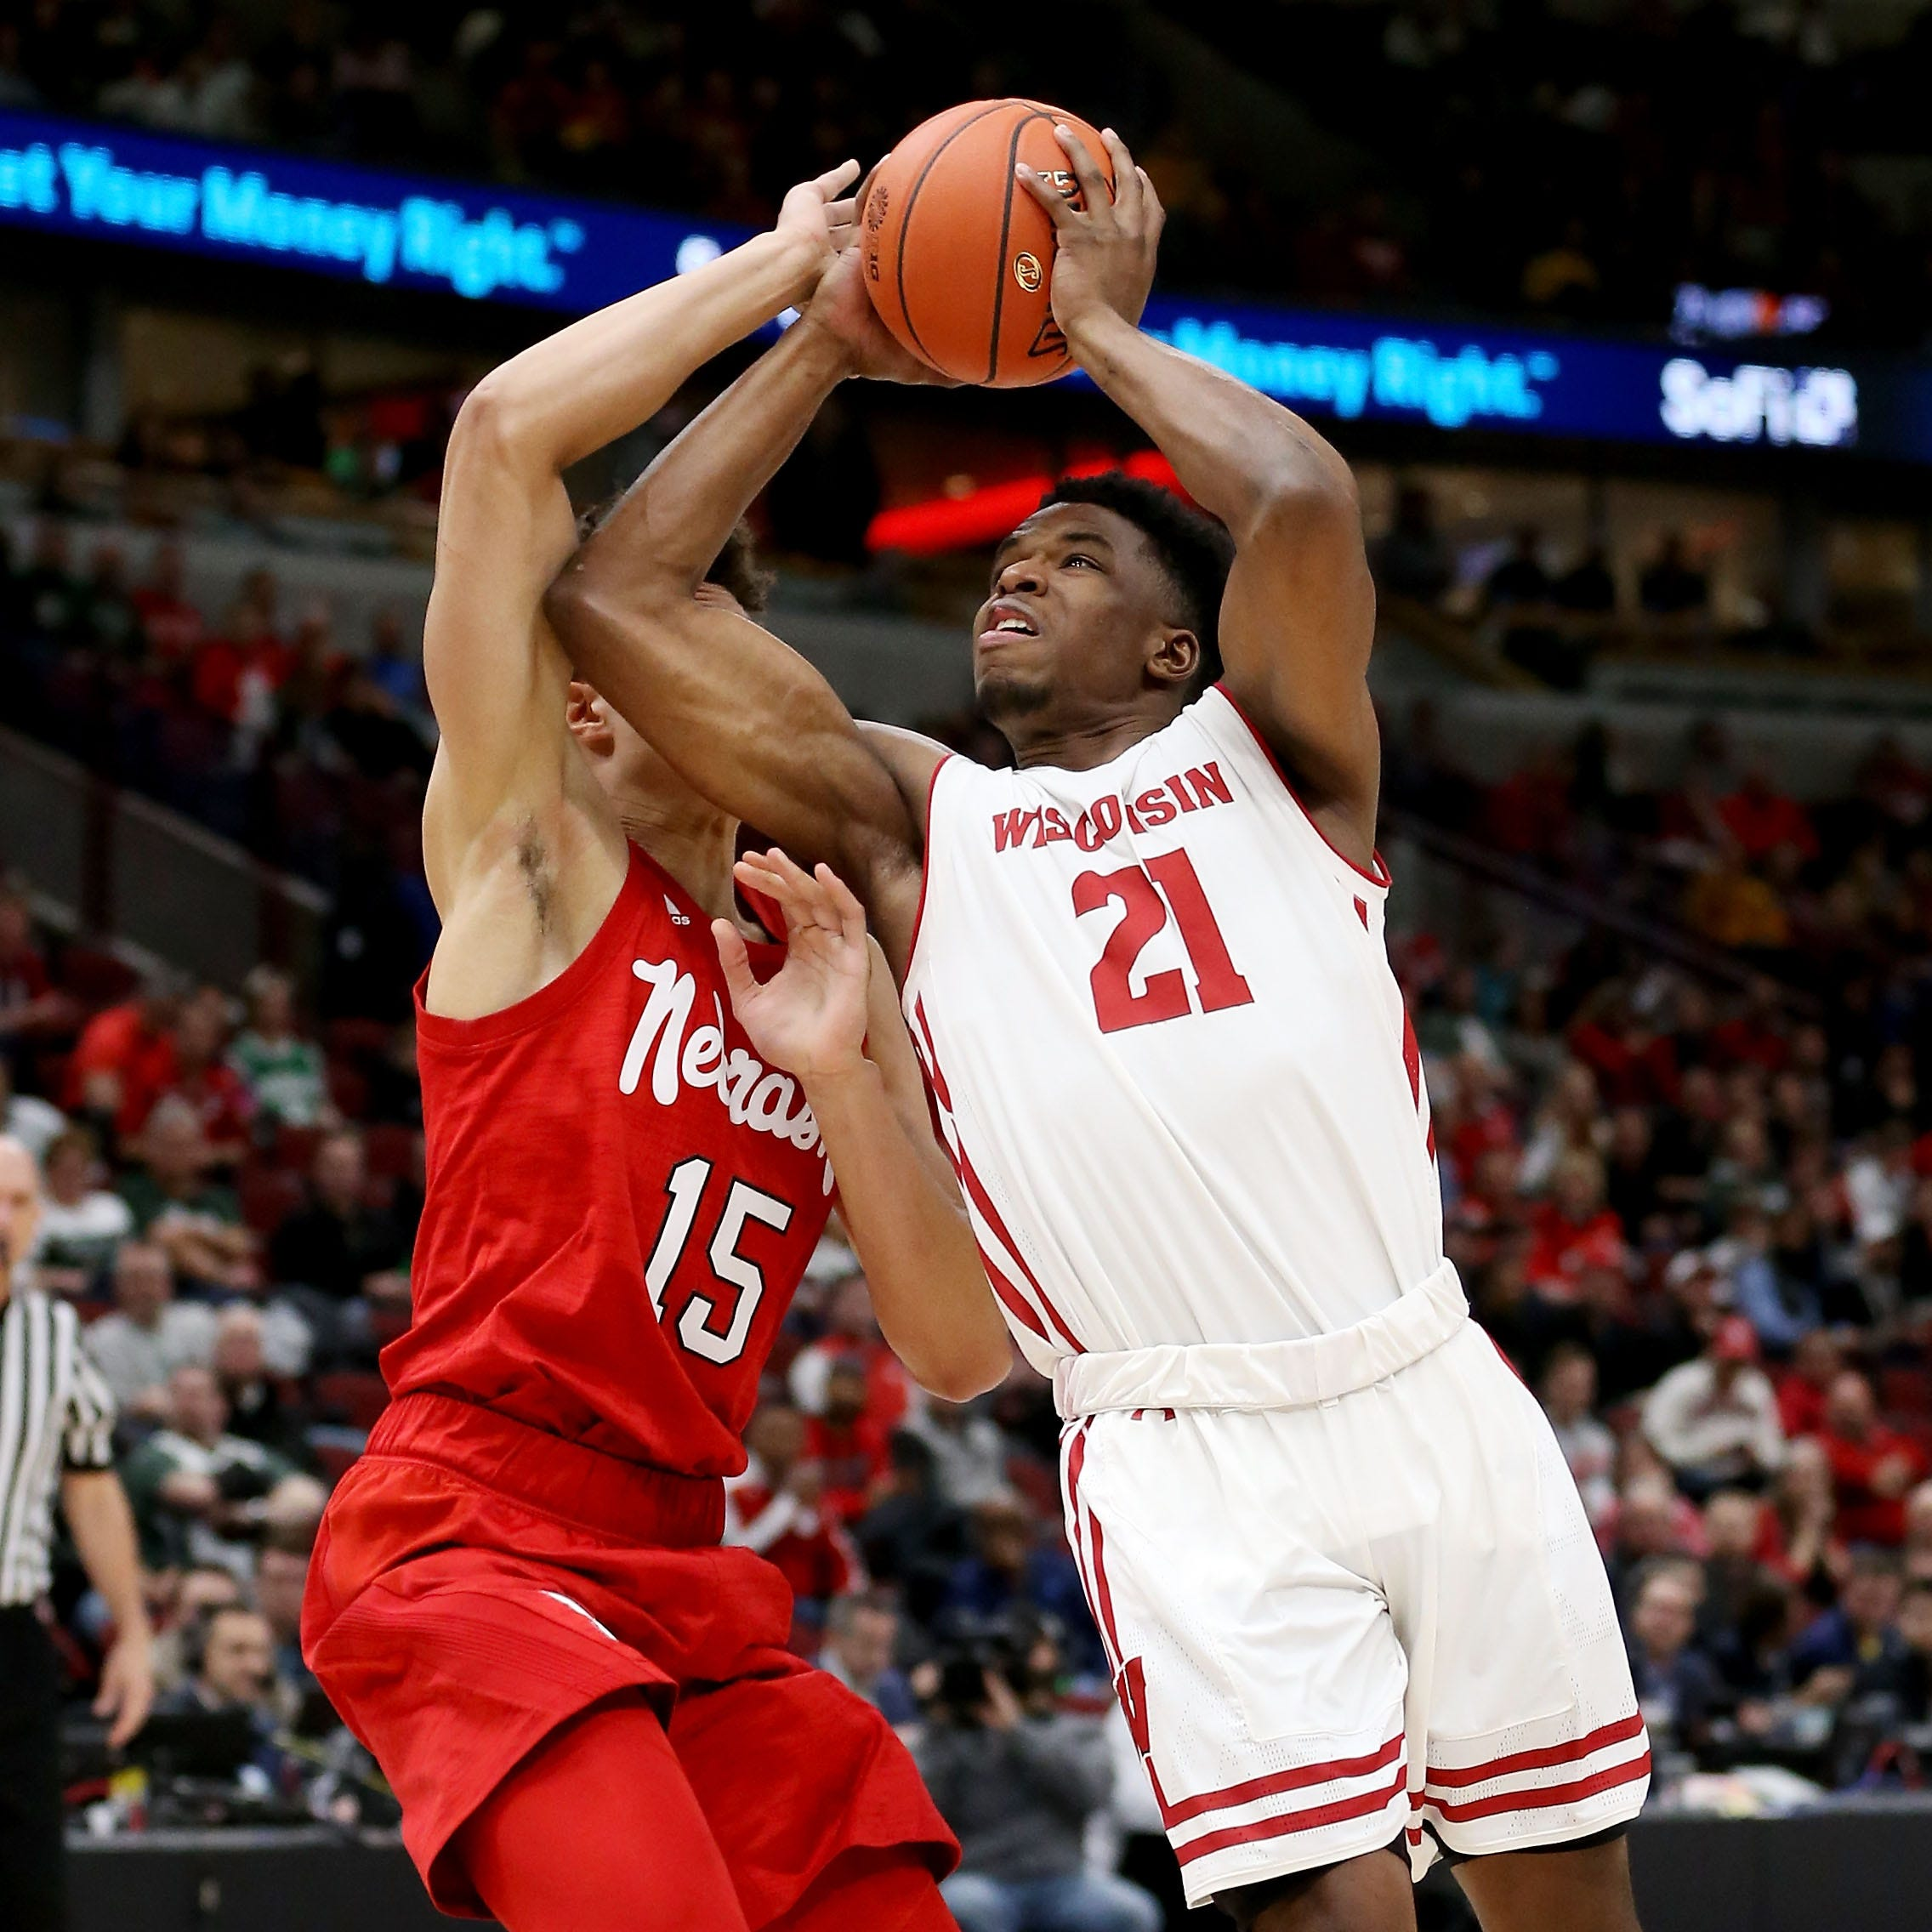 Wisconsin advances to Big Ten semifinals despite flawed performance that included 17 turnovers